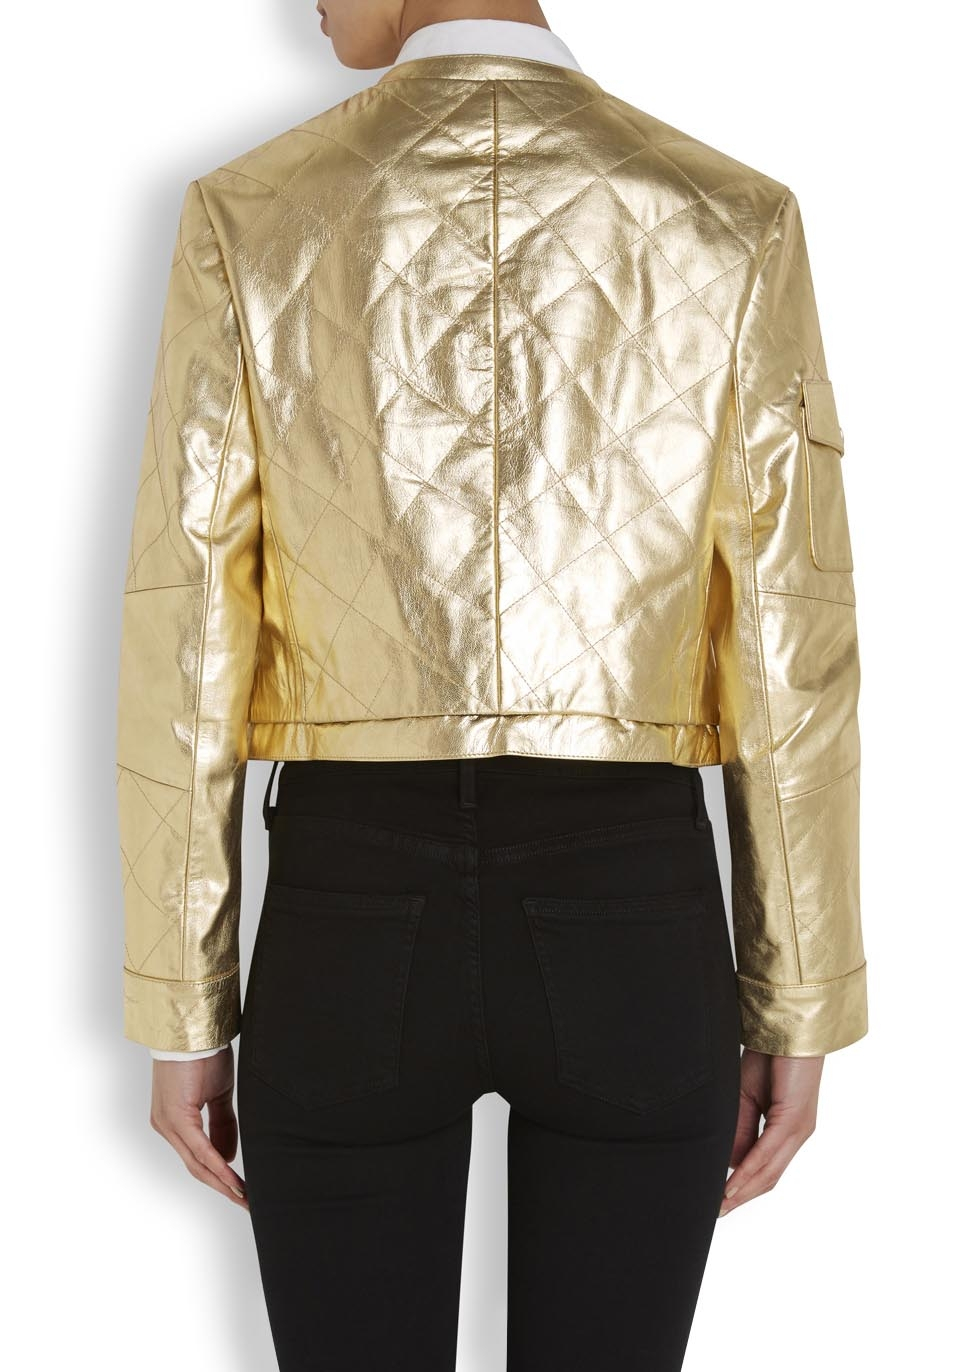 Boutique moschino Gold Quilted Leather Jacket in Metallic | Lyst : gold quilted jacket - Adamdwight.com